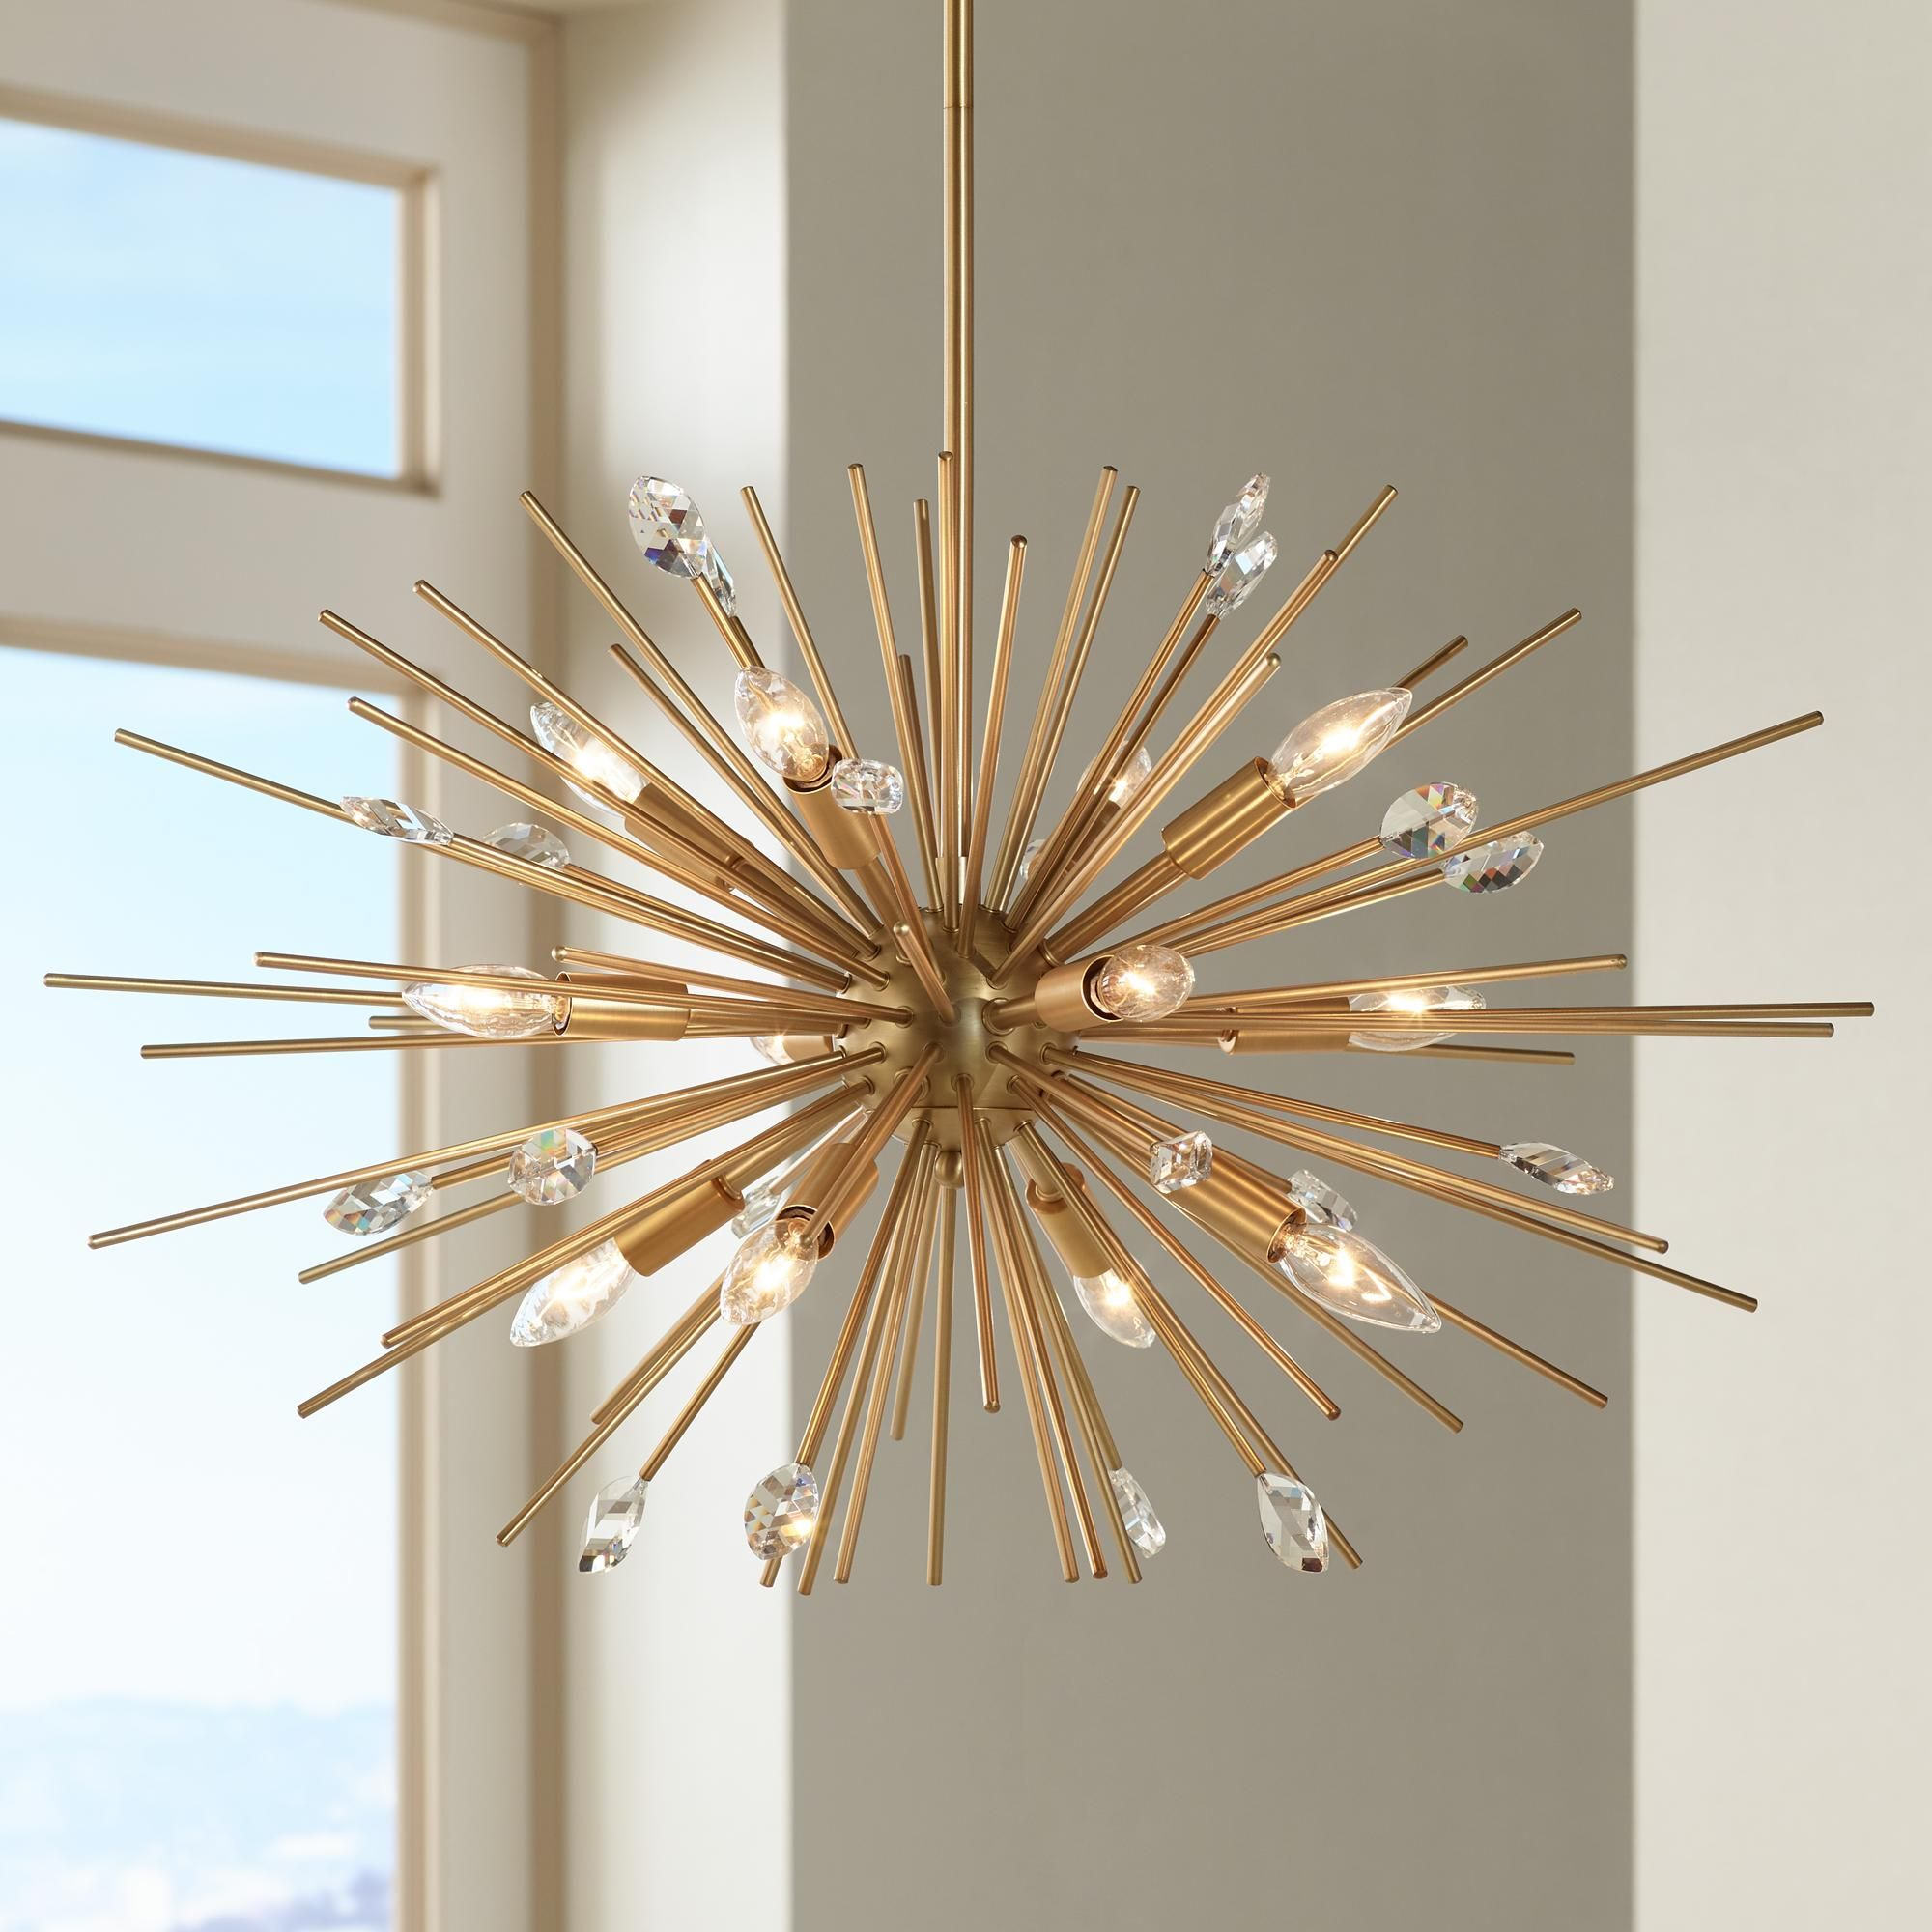 Quorum electra 8 light sputnik chandelier amp reviews wayfair - Possini Euro Renae 29 1 2 Wide Antique Gold Pendant Light 1f063